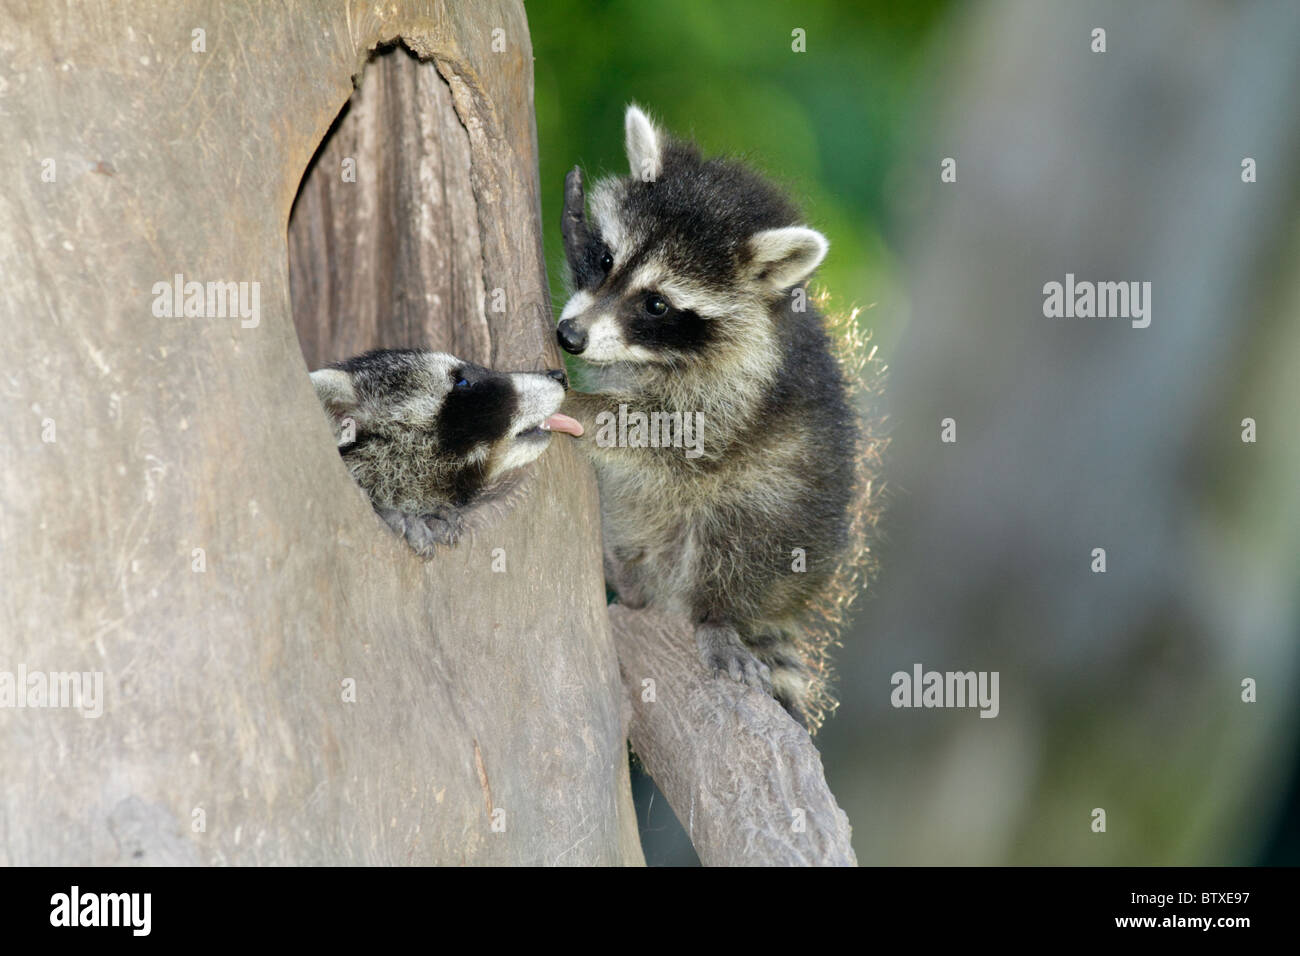 Raccoon (Procyon lotor), two baby animals playing at den entrance, Germany - Stock Image